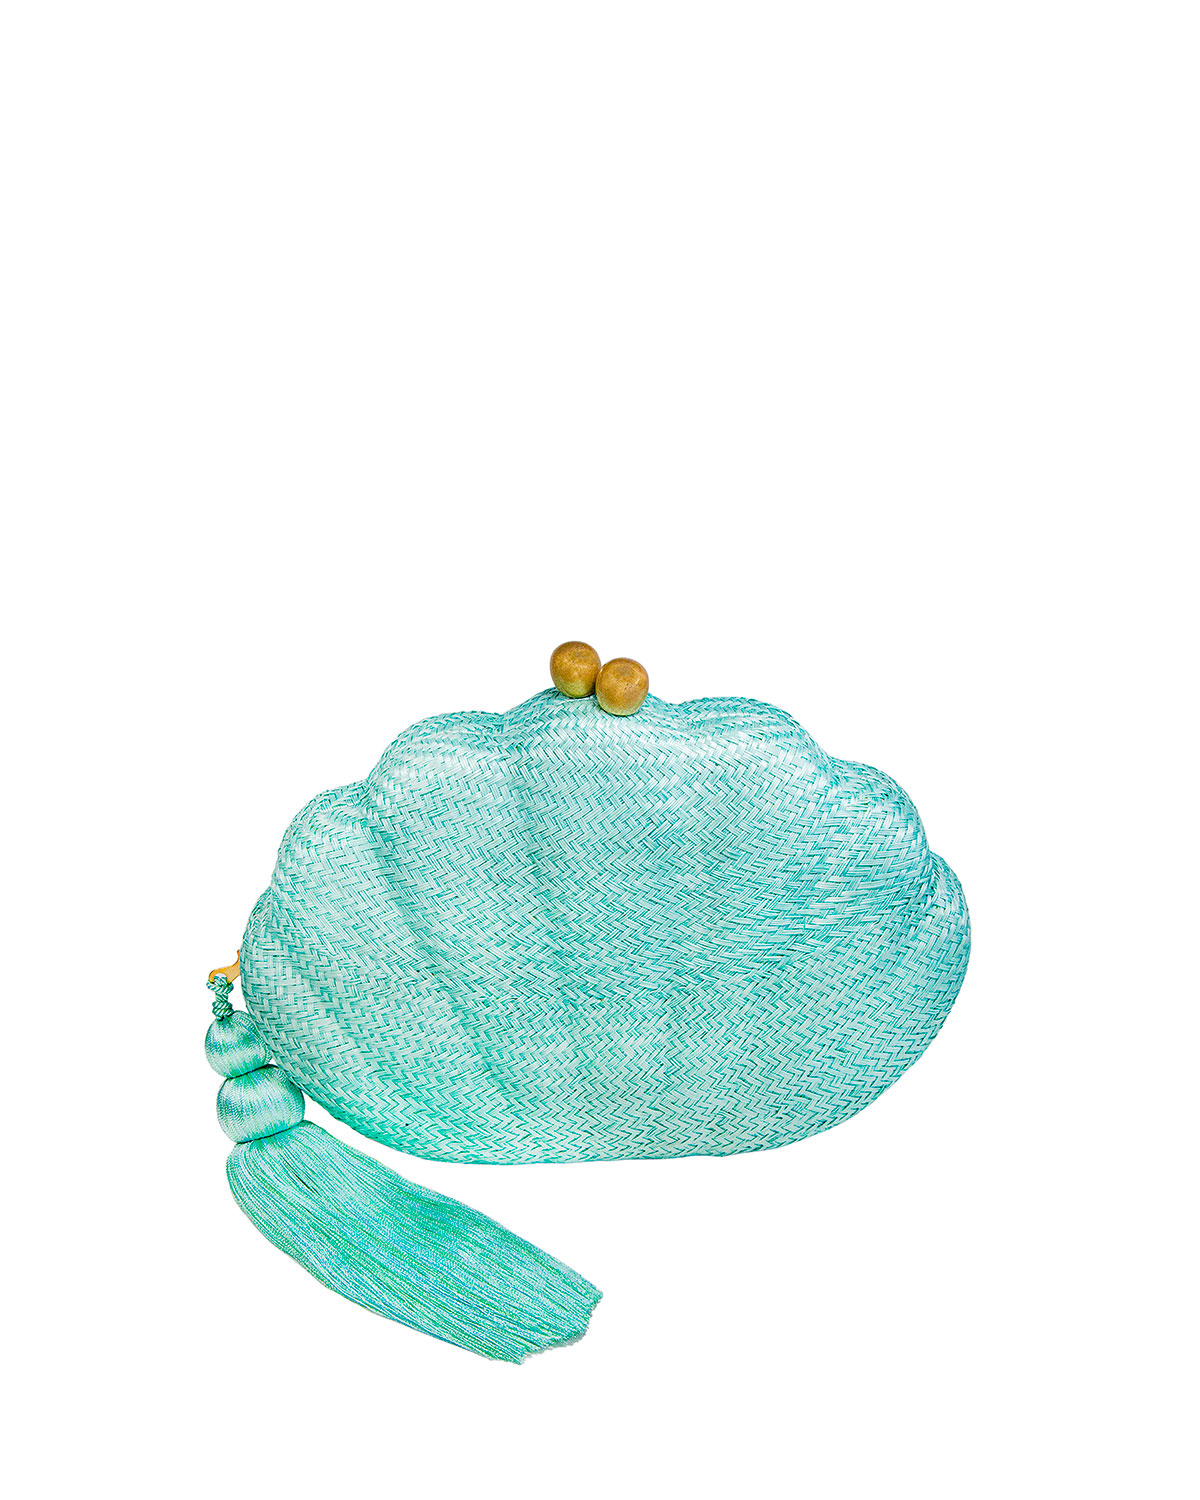 Rafe KATE SCALLOP SHELL TASSEL CLUTCH BAG, TURQUOISE